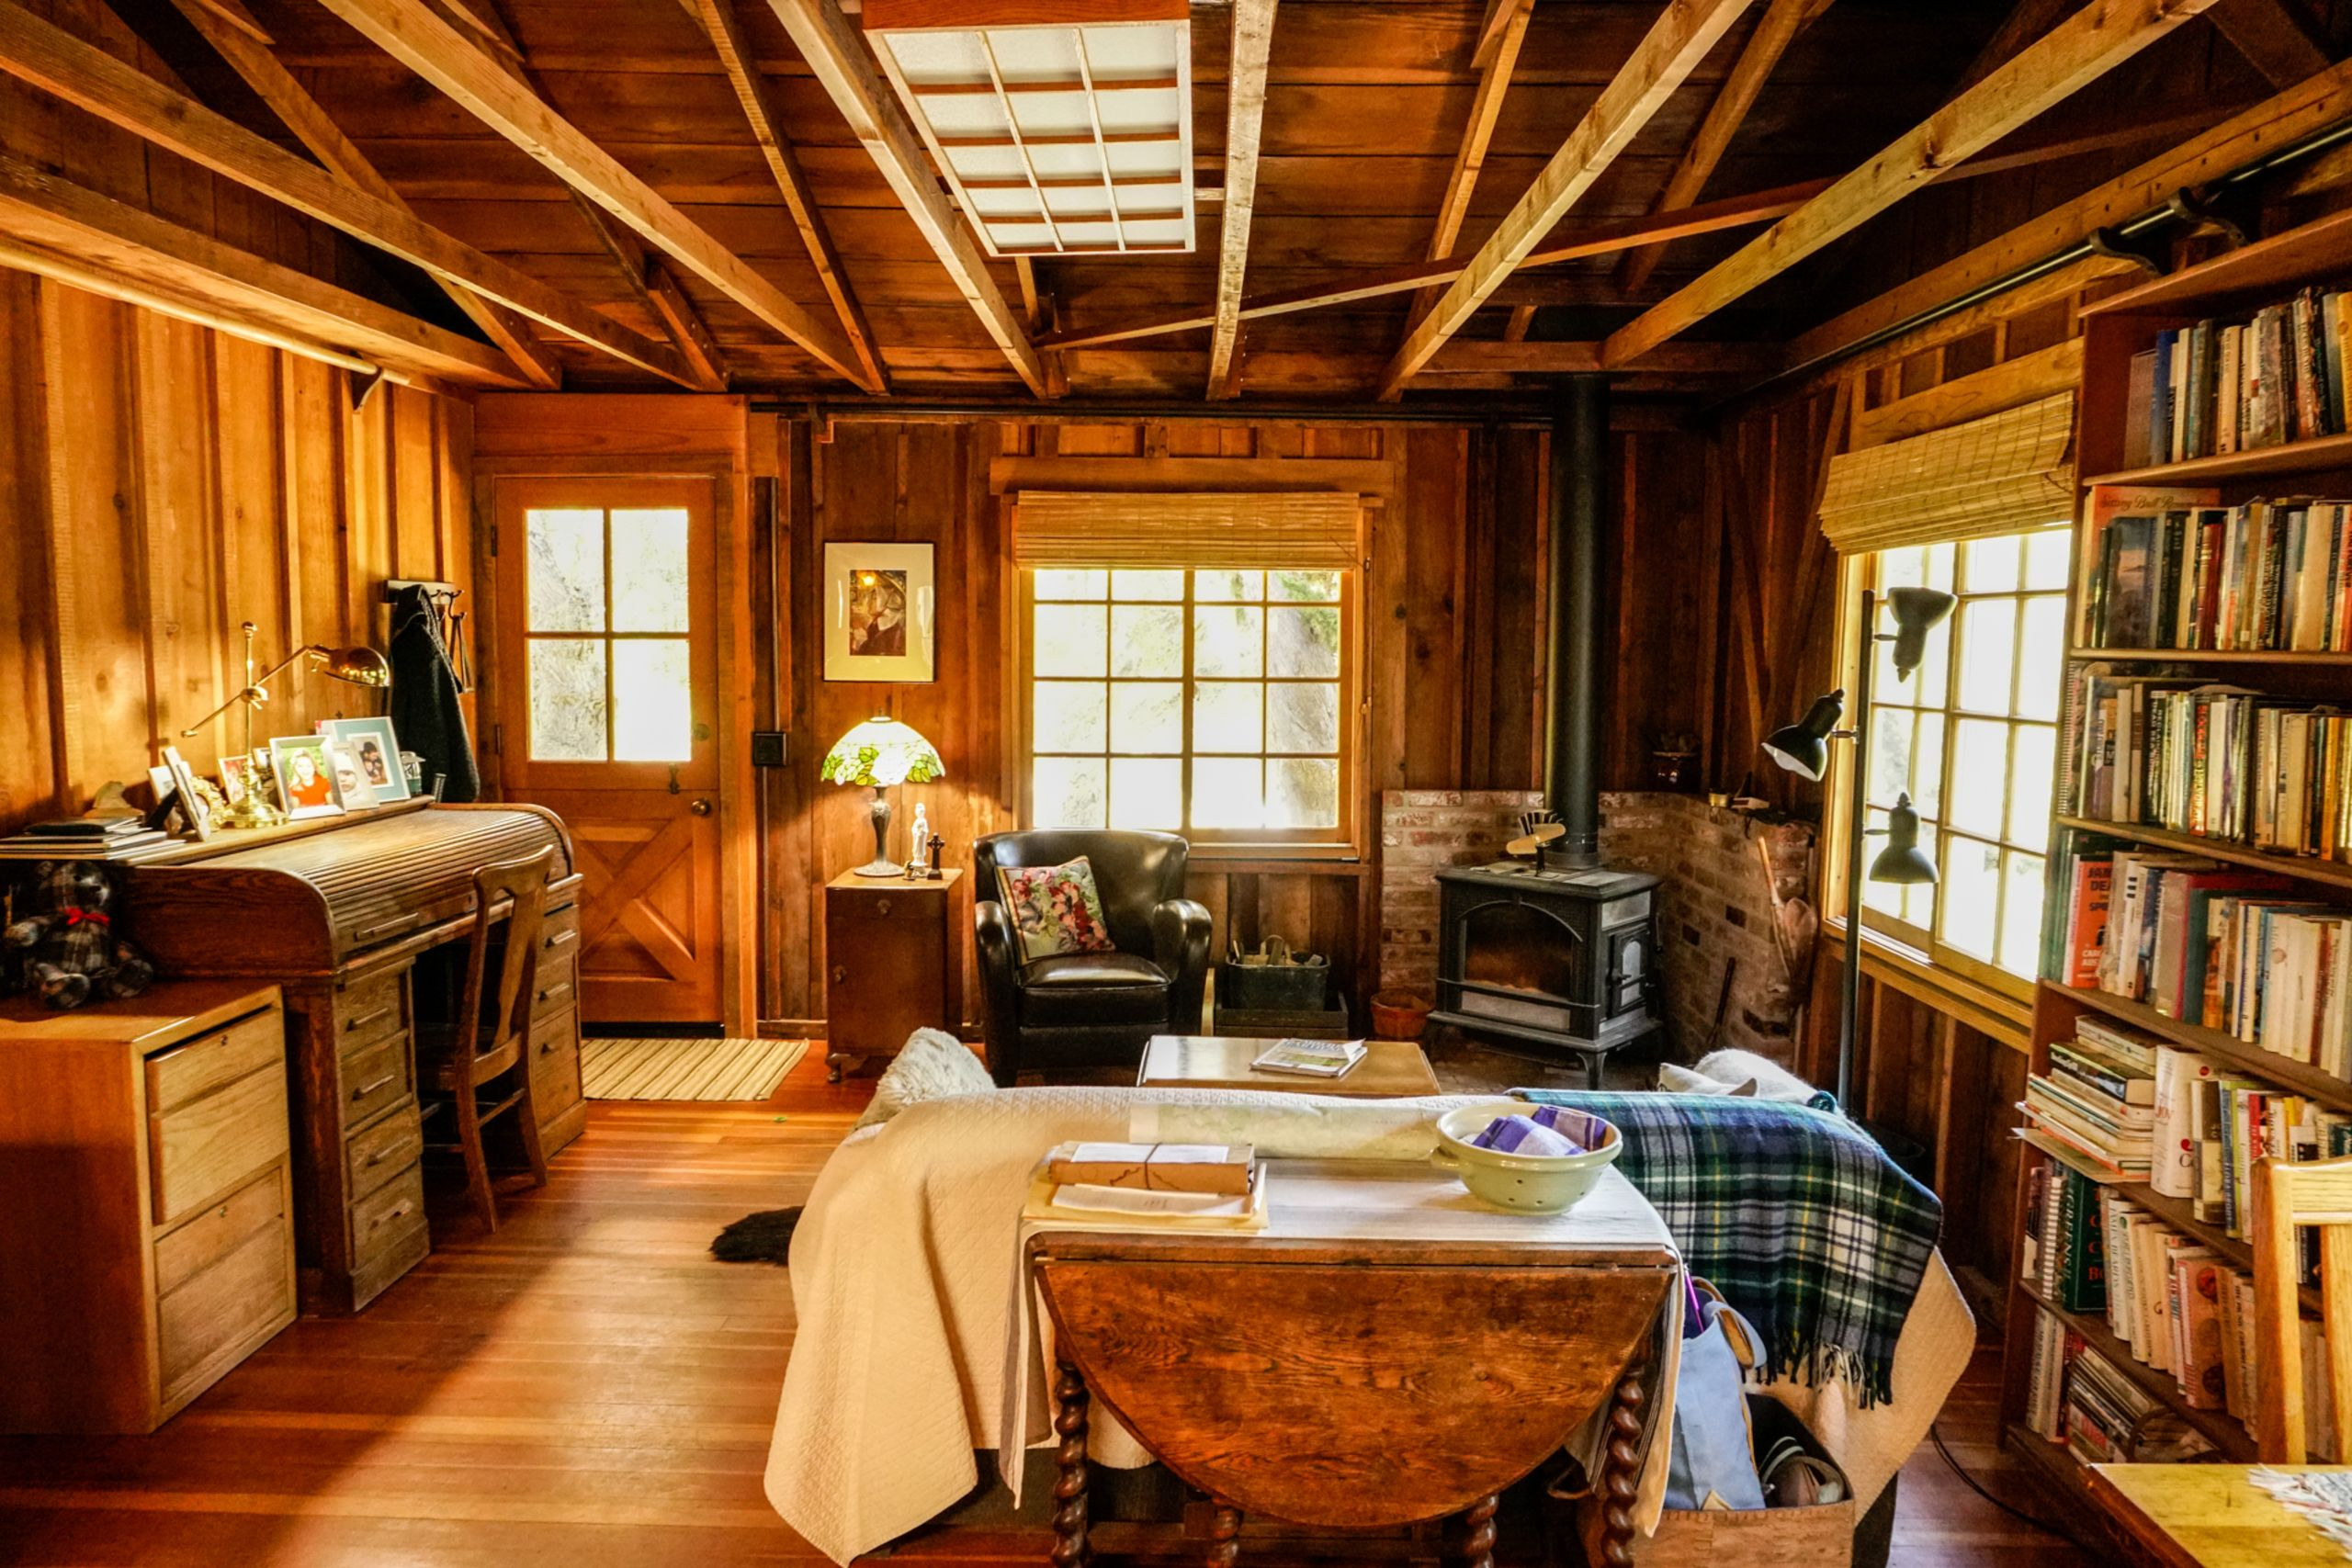 FANTASTIC HISTORICAL CABIN ON 12 ACRES IN CARMEL VALLEY.  10 MINUTES TO CARMEL!